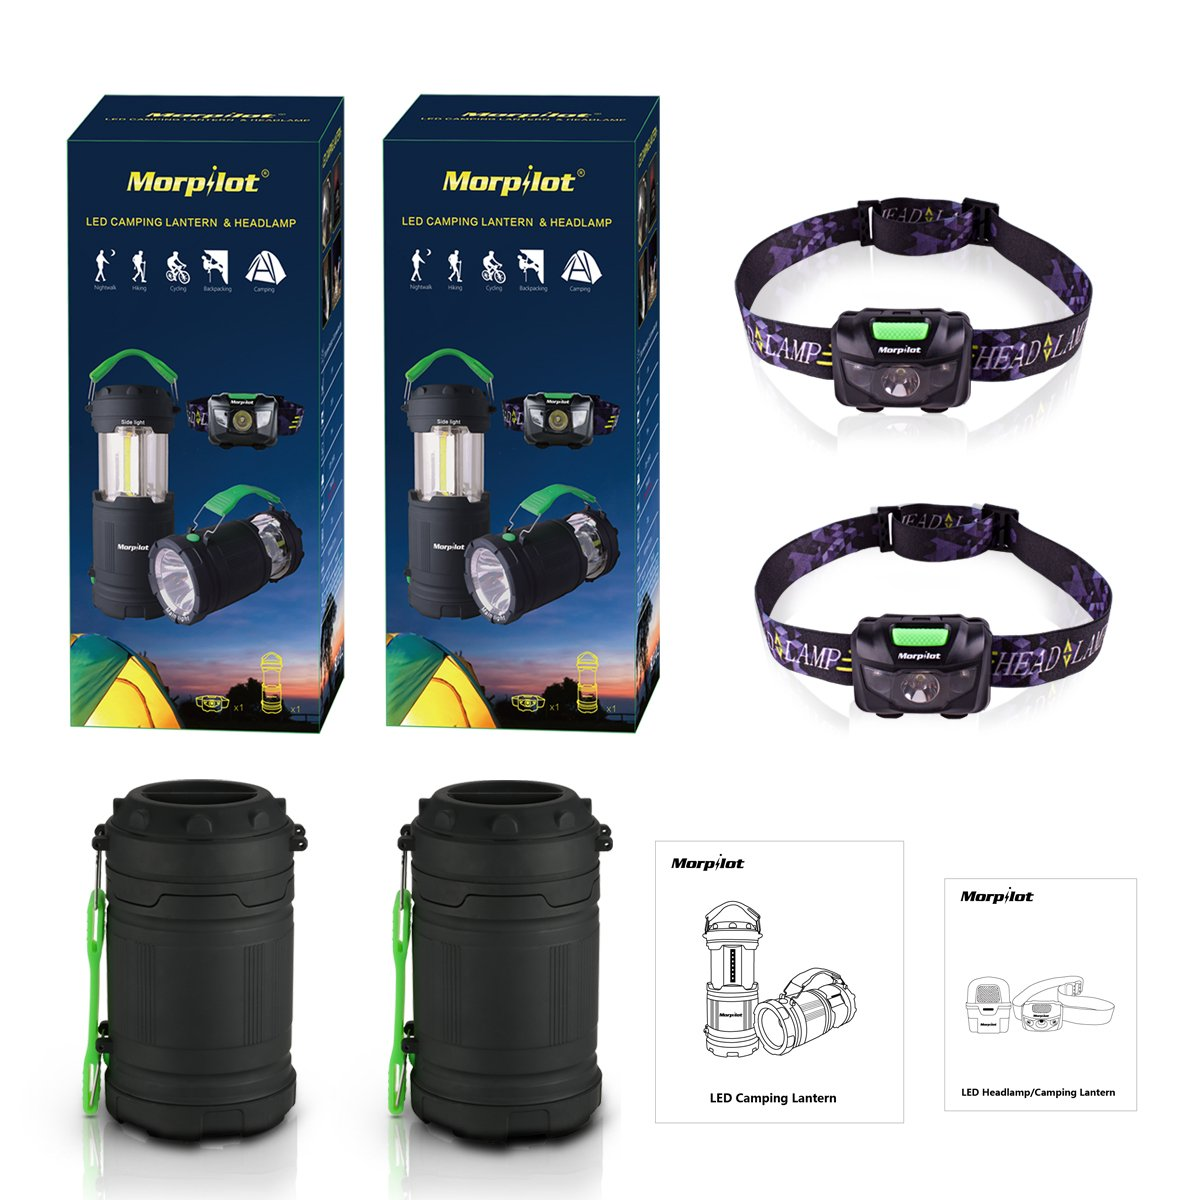 Combo: 2 Pack Morpilot Camping Lantern Outdoor Portable LED with Flashlight 7 Modes & LED Headlamp 5 Modes with Red Strobe.